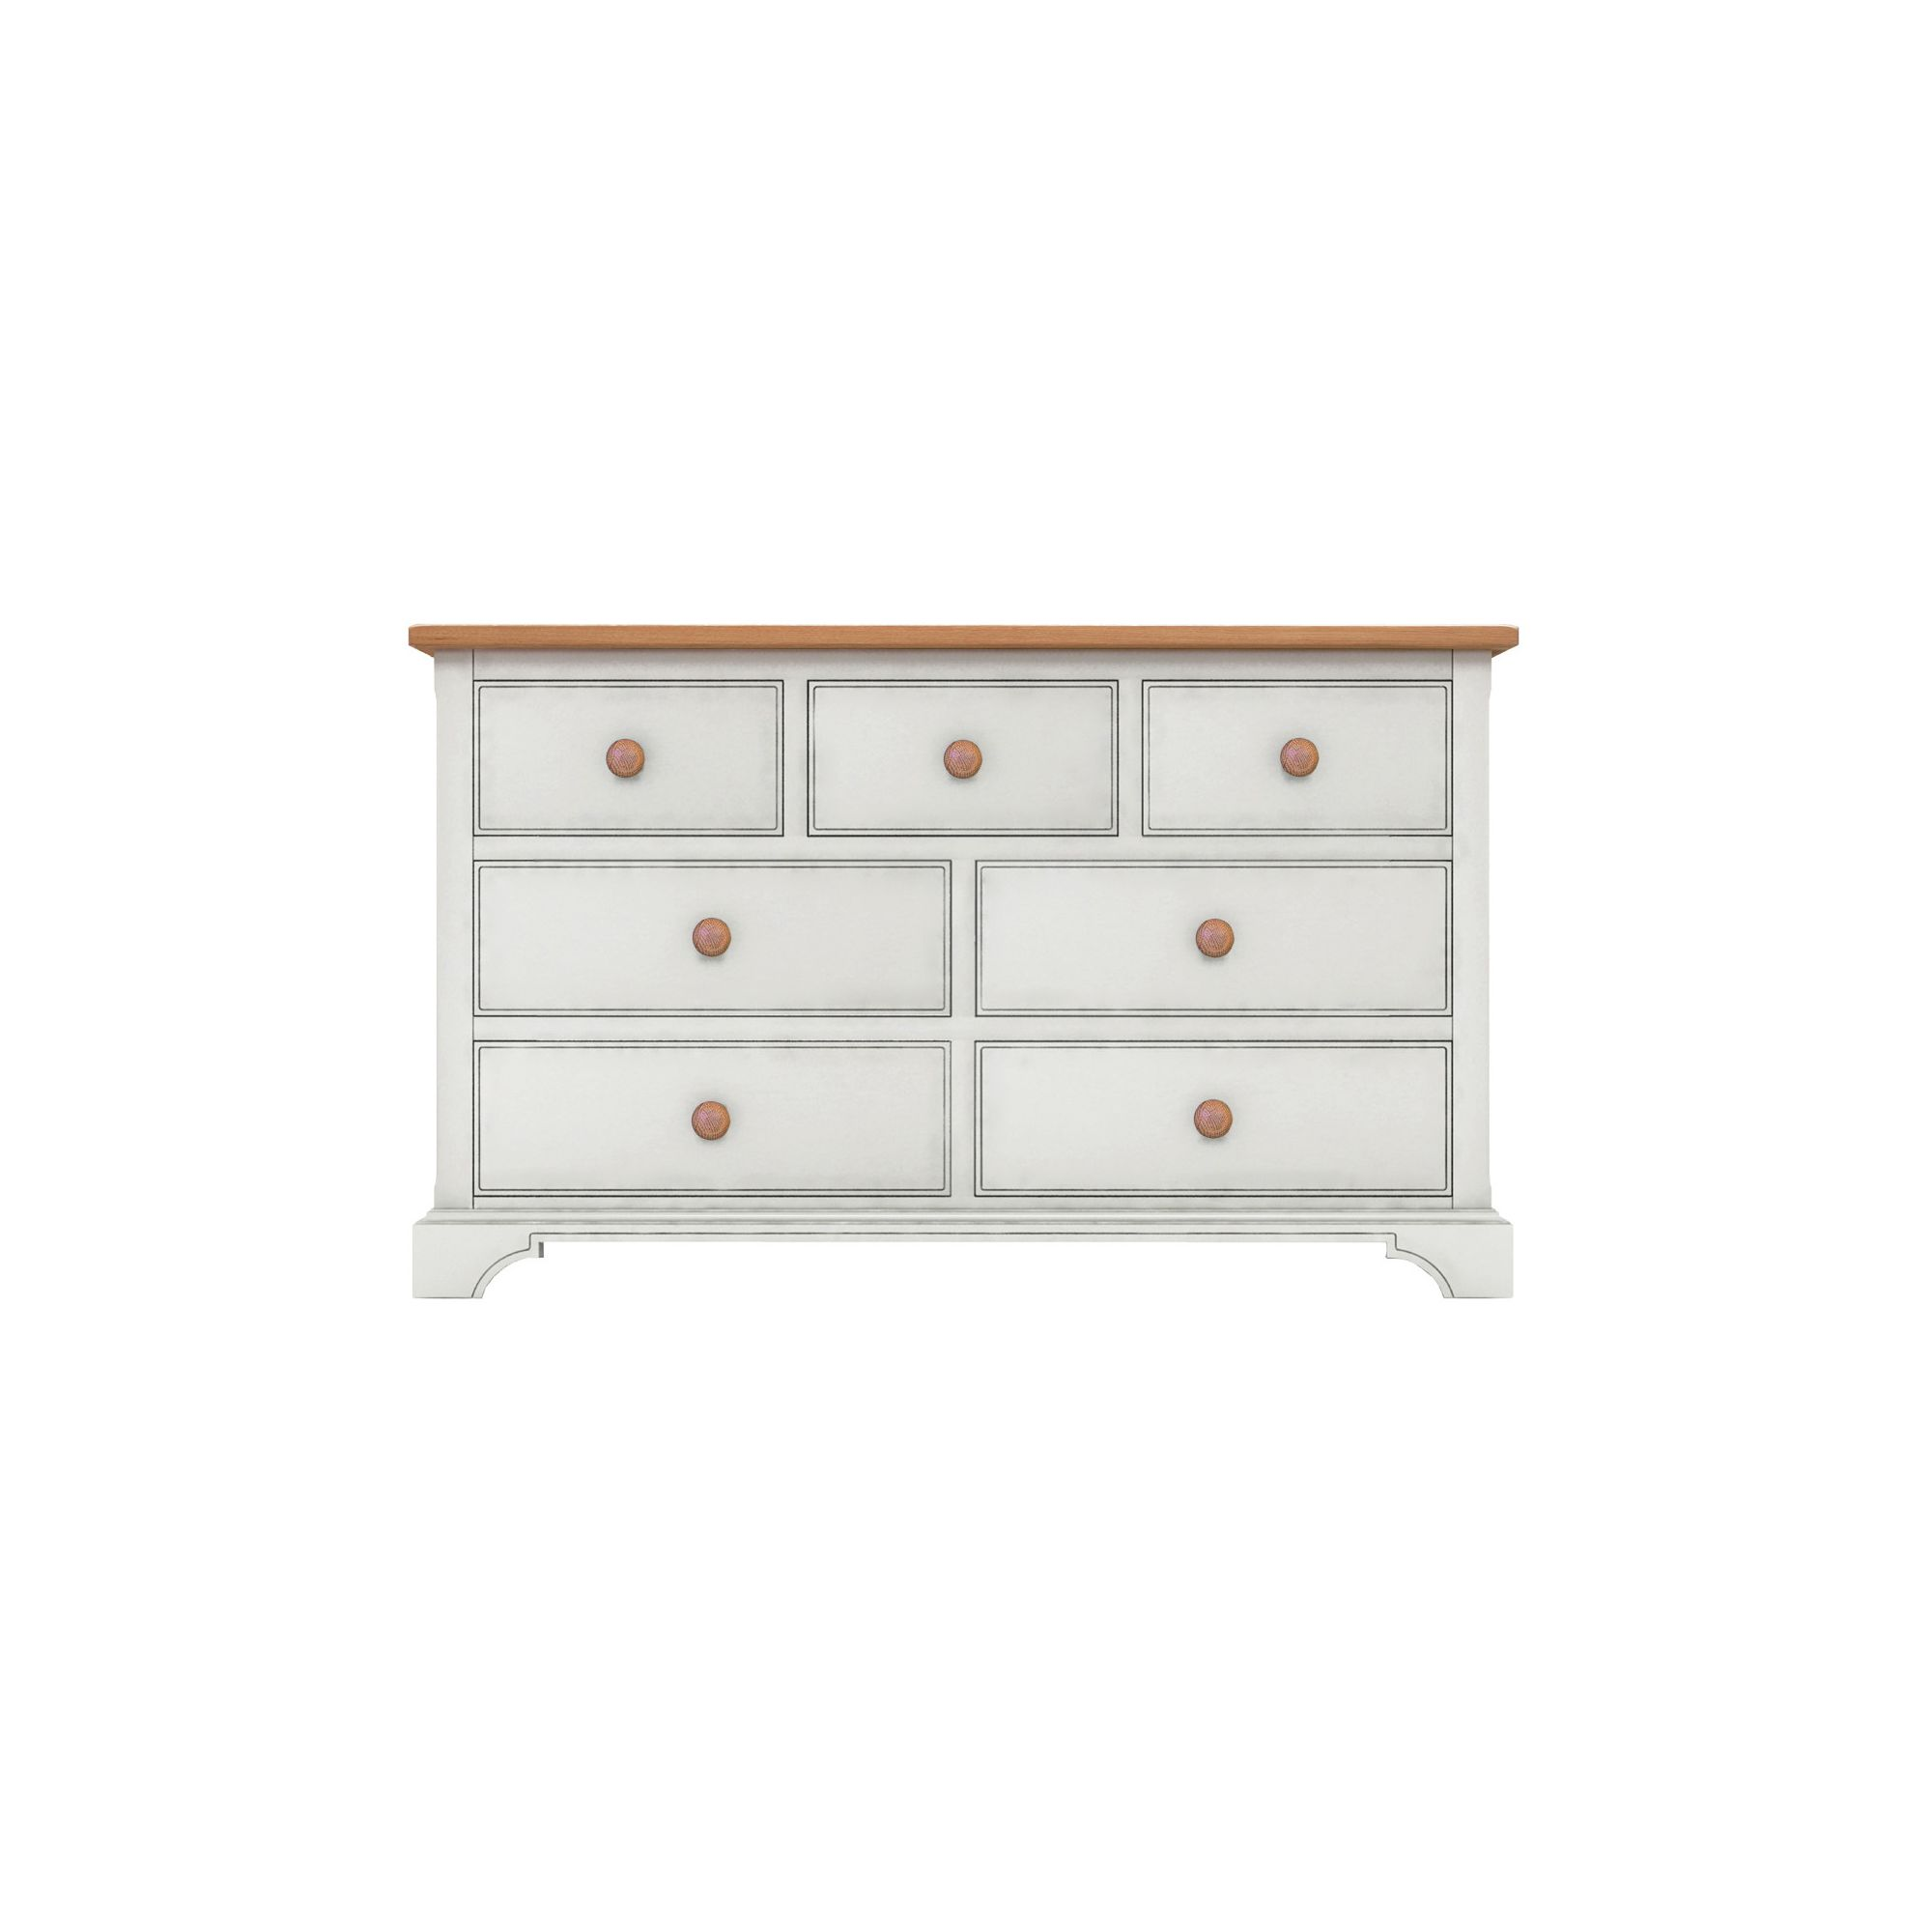 Thorndon Highgrove Bedroom 7 Drawer Chest at Tesco Direct